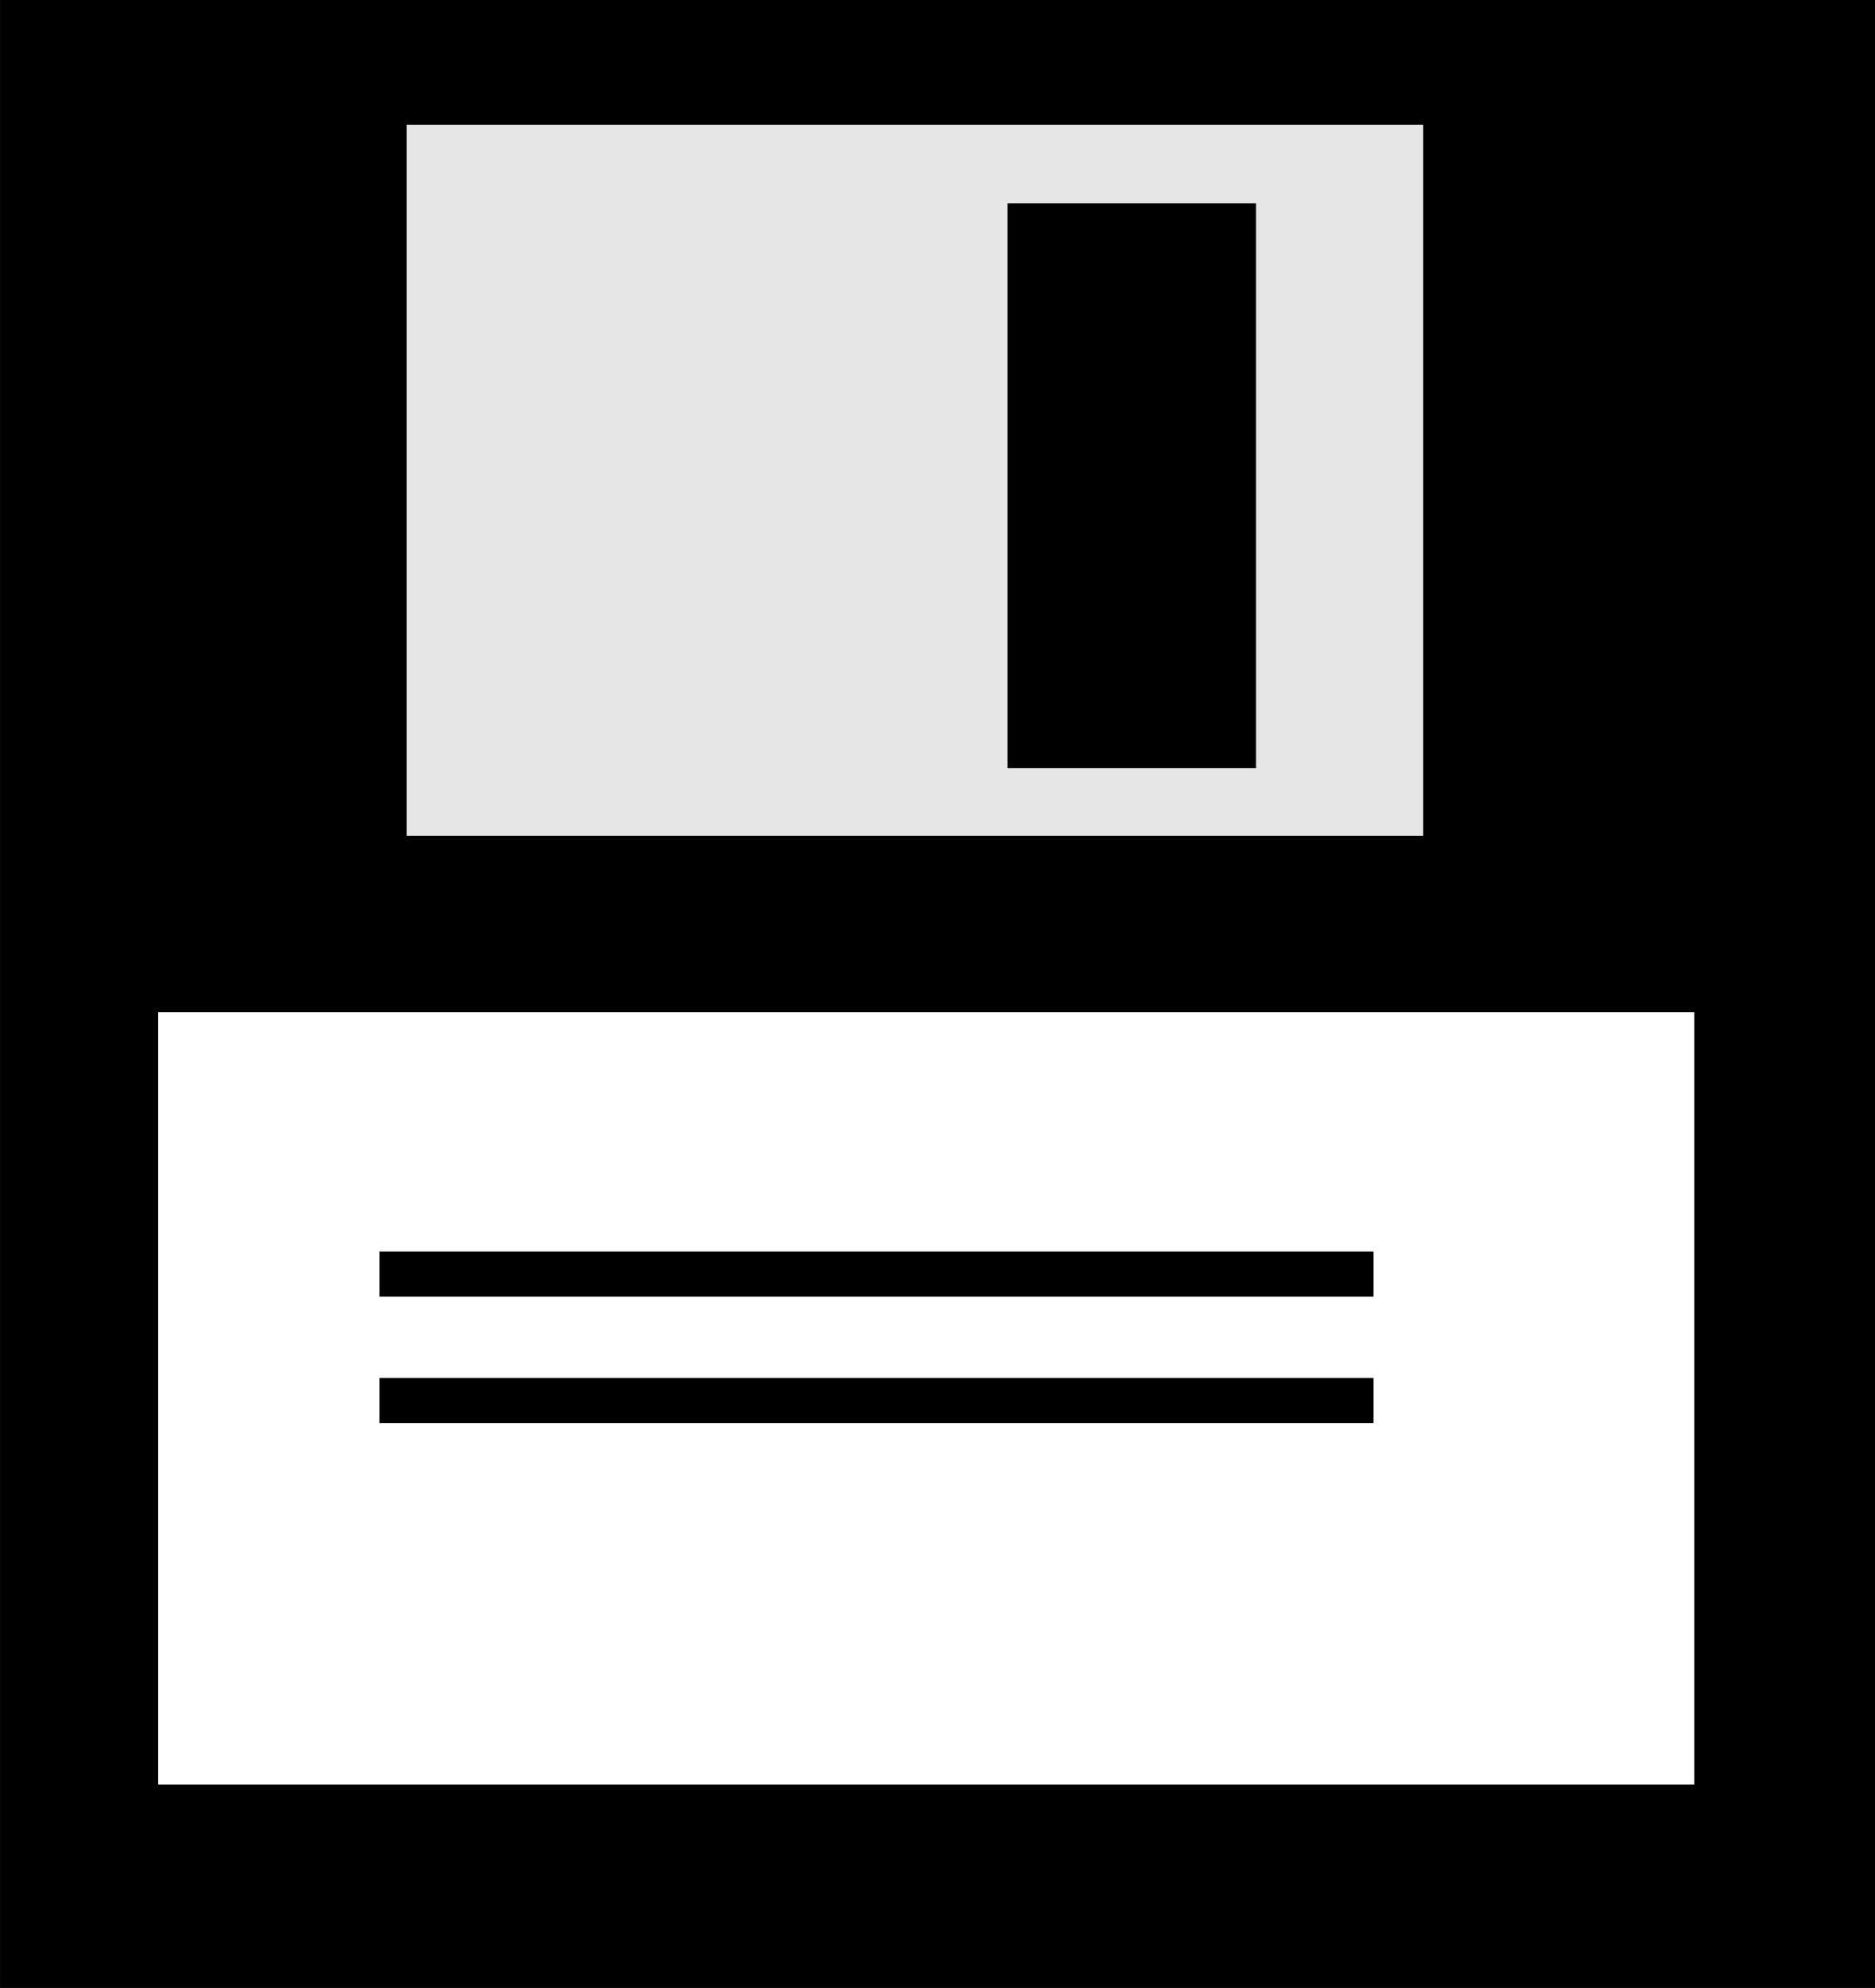 floppy disk black and white by inkscapeforum.it